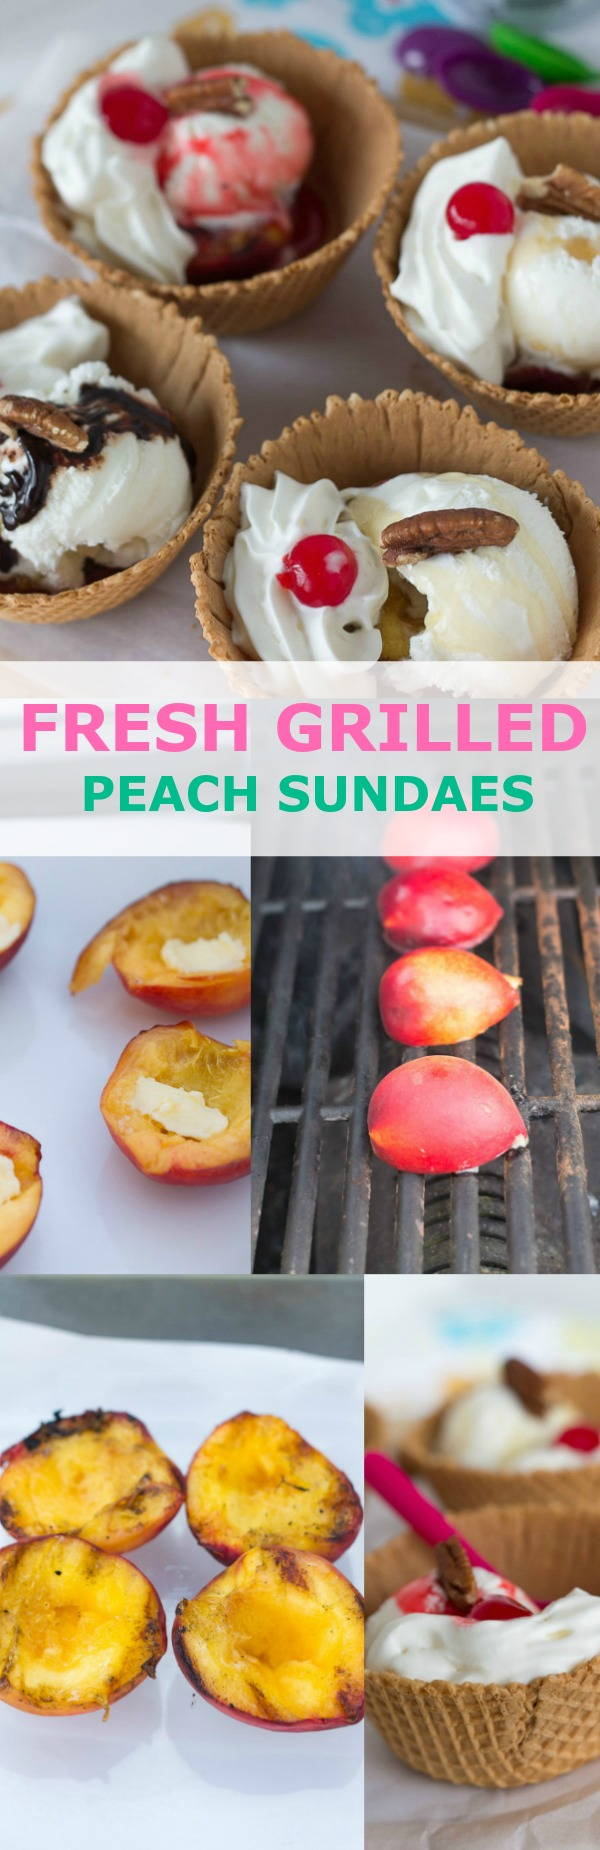 fresh grilled peach sundaes